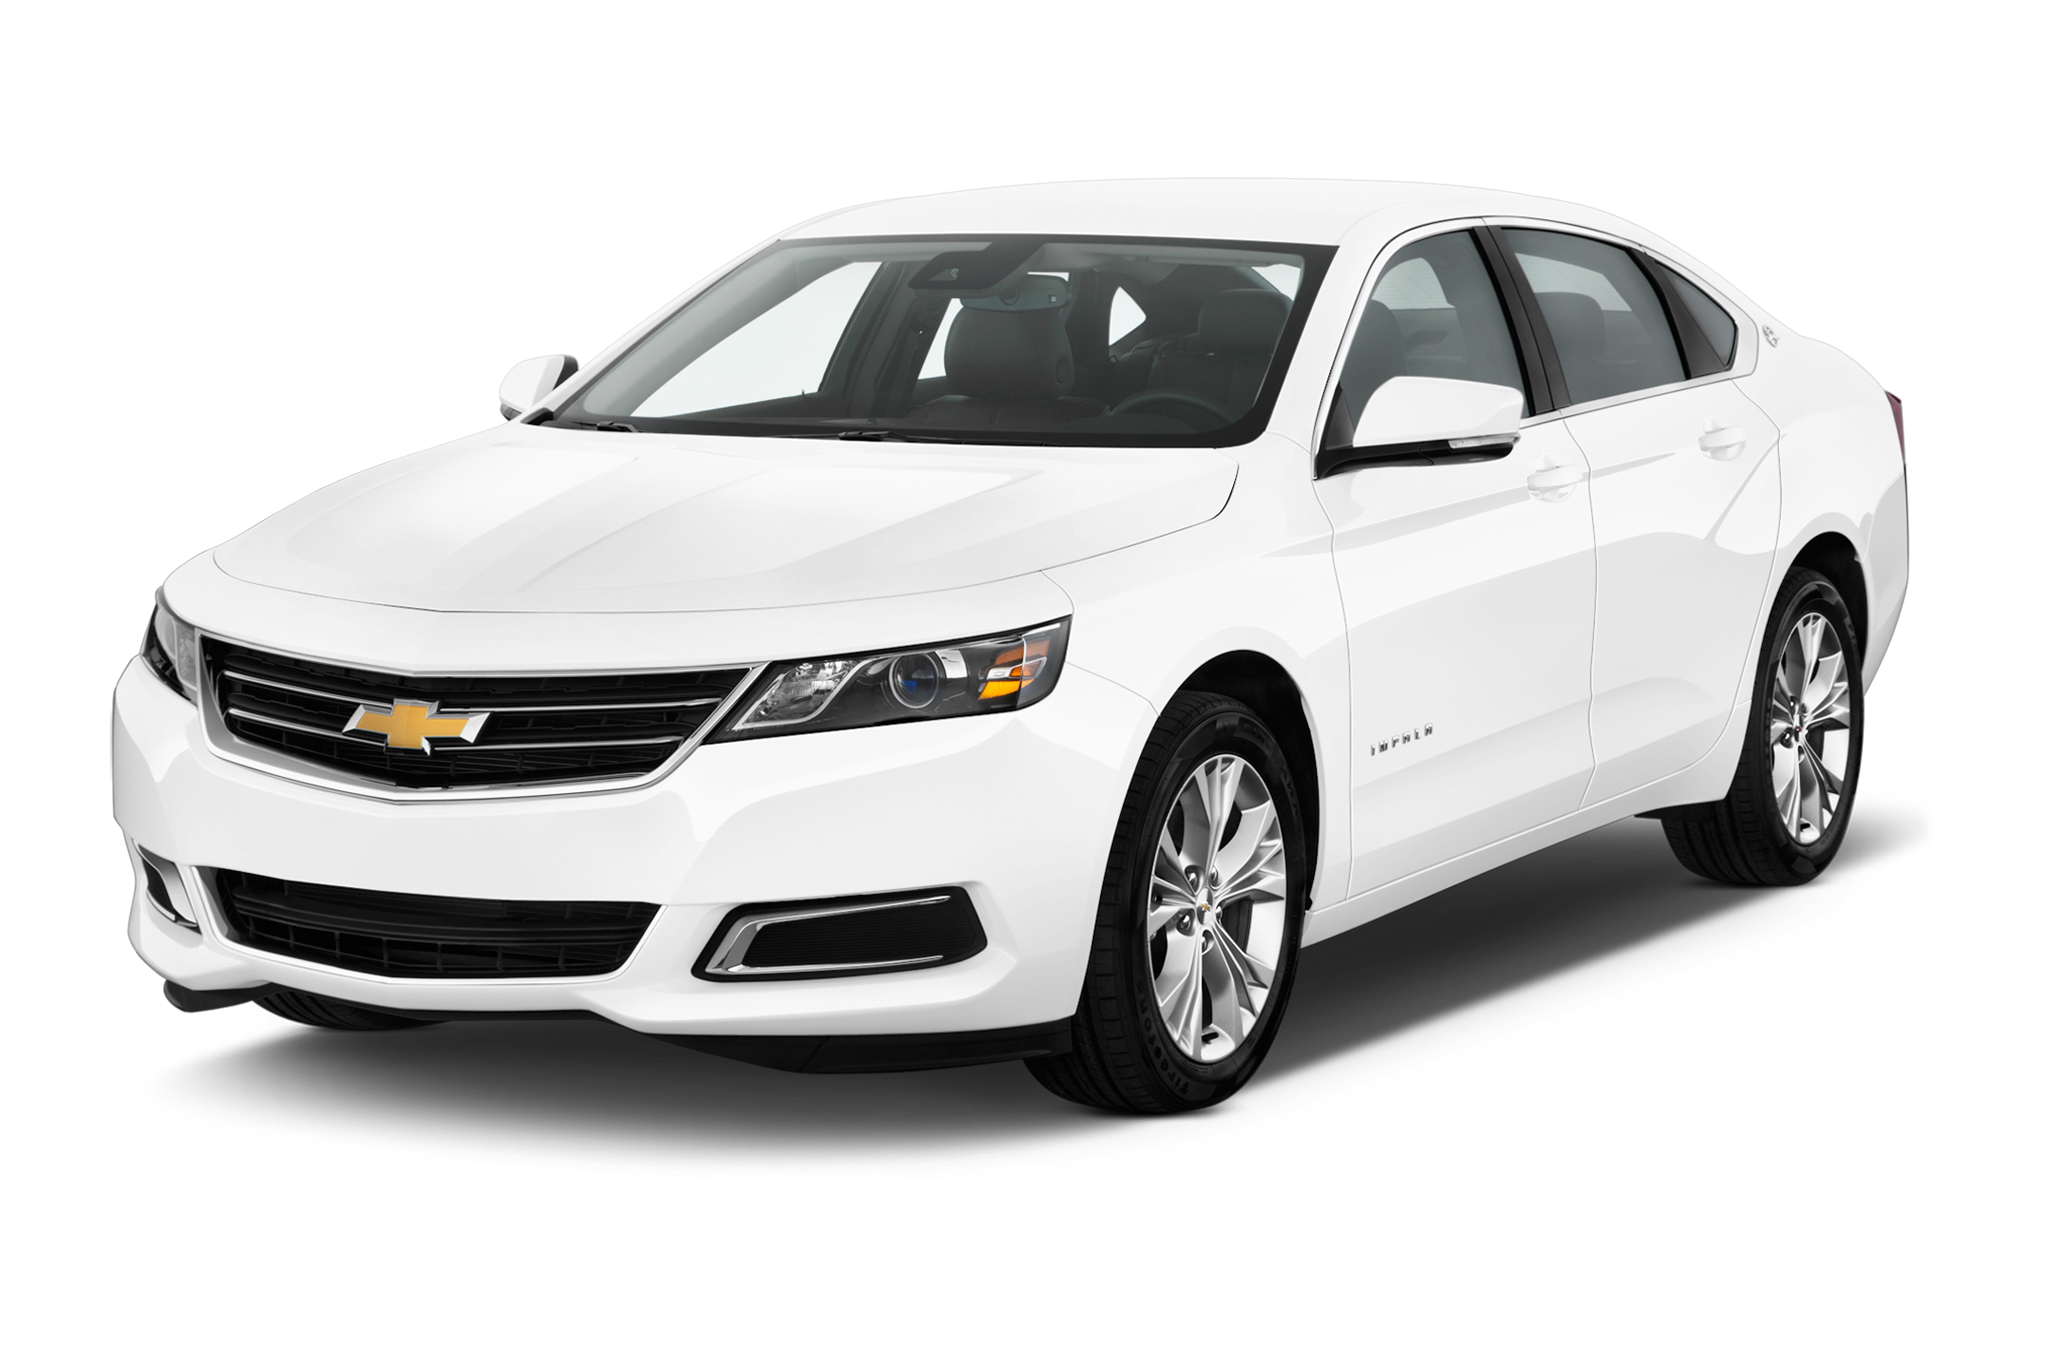 Impala drawing 90 car. Executive transportation reservation center